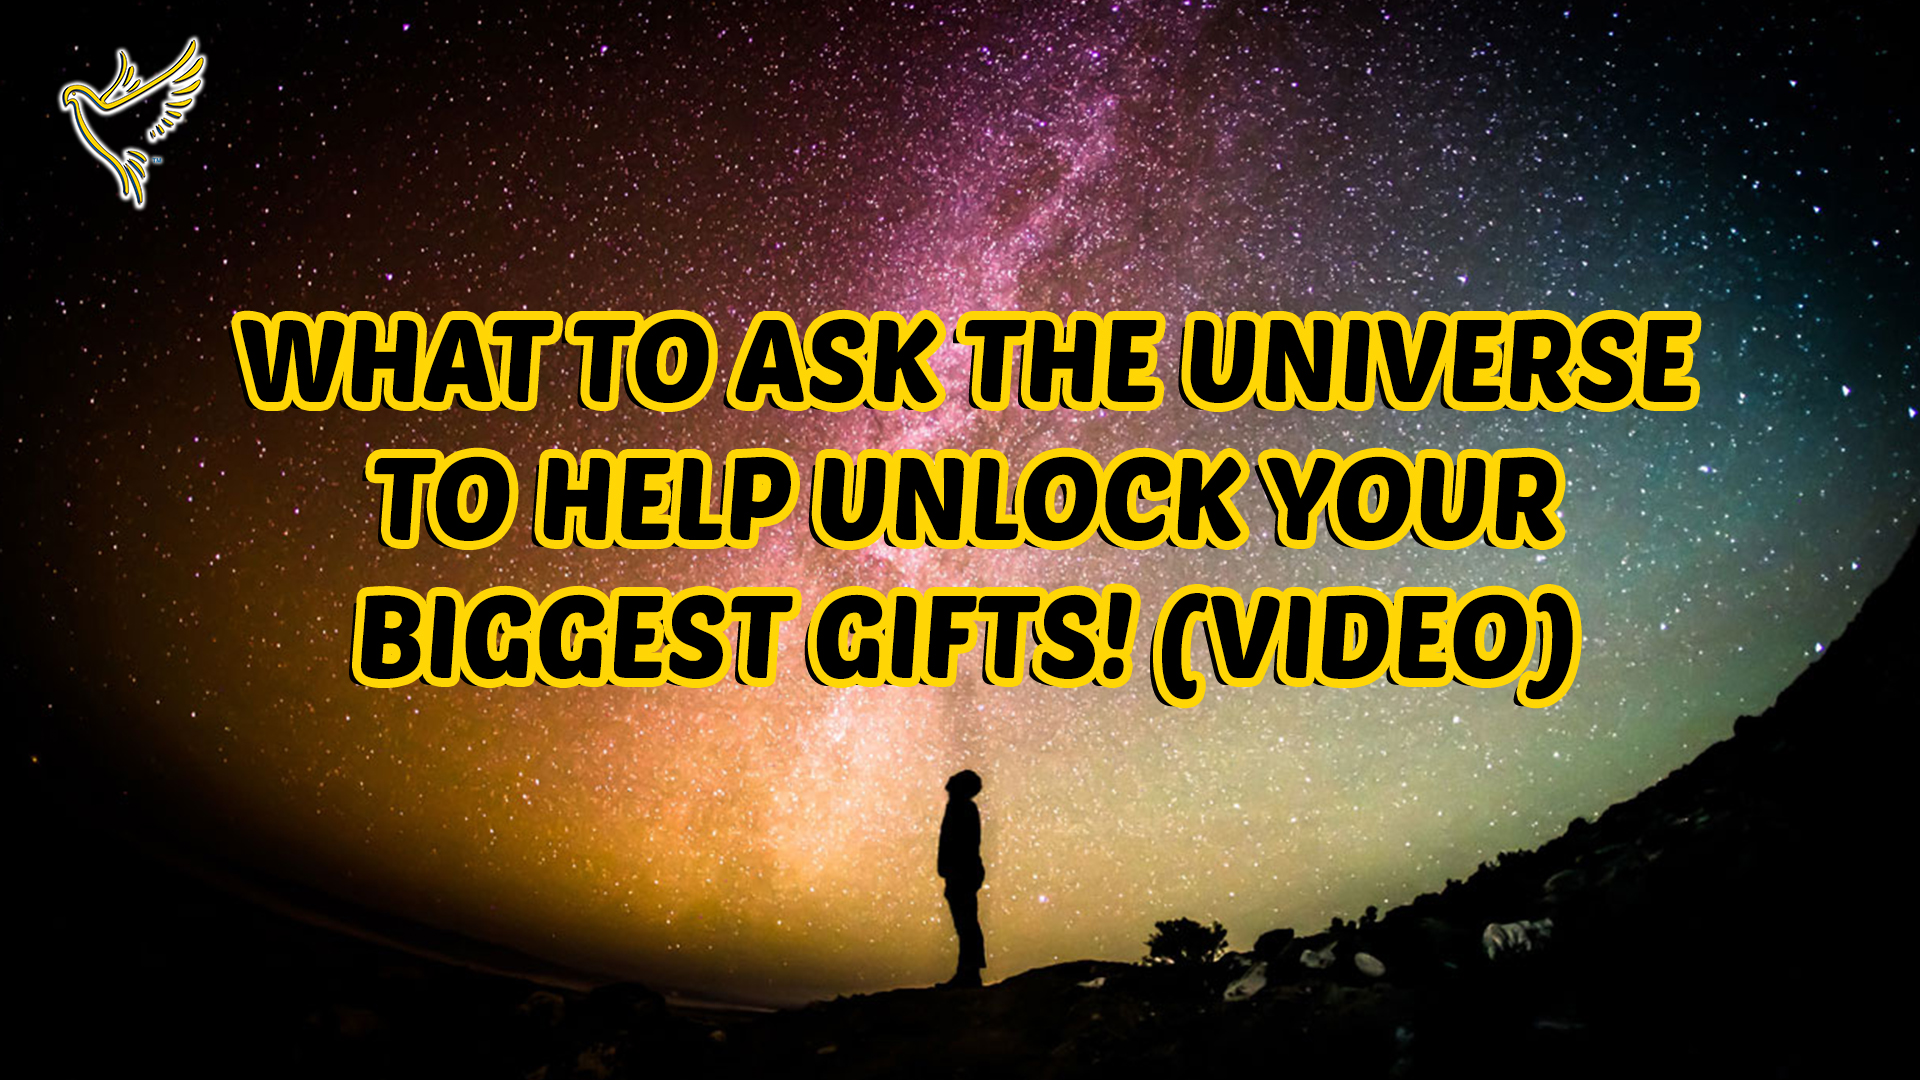 What To Ask The UNIVERSE To Help Unlock Your BIGGEST Gifts (VIDEO)